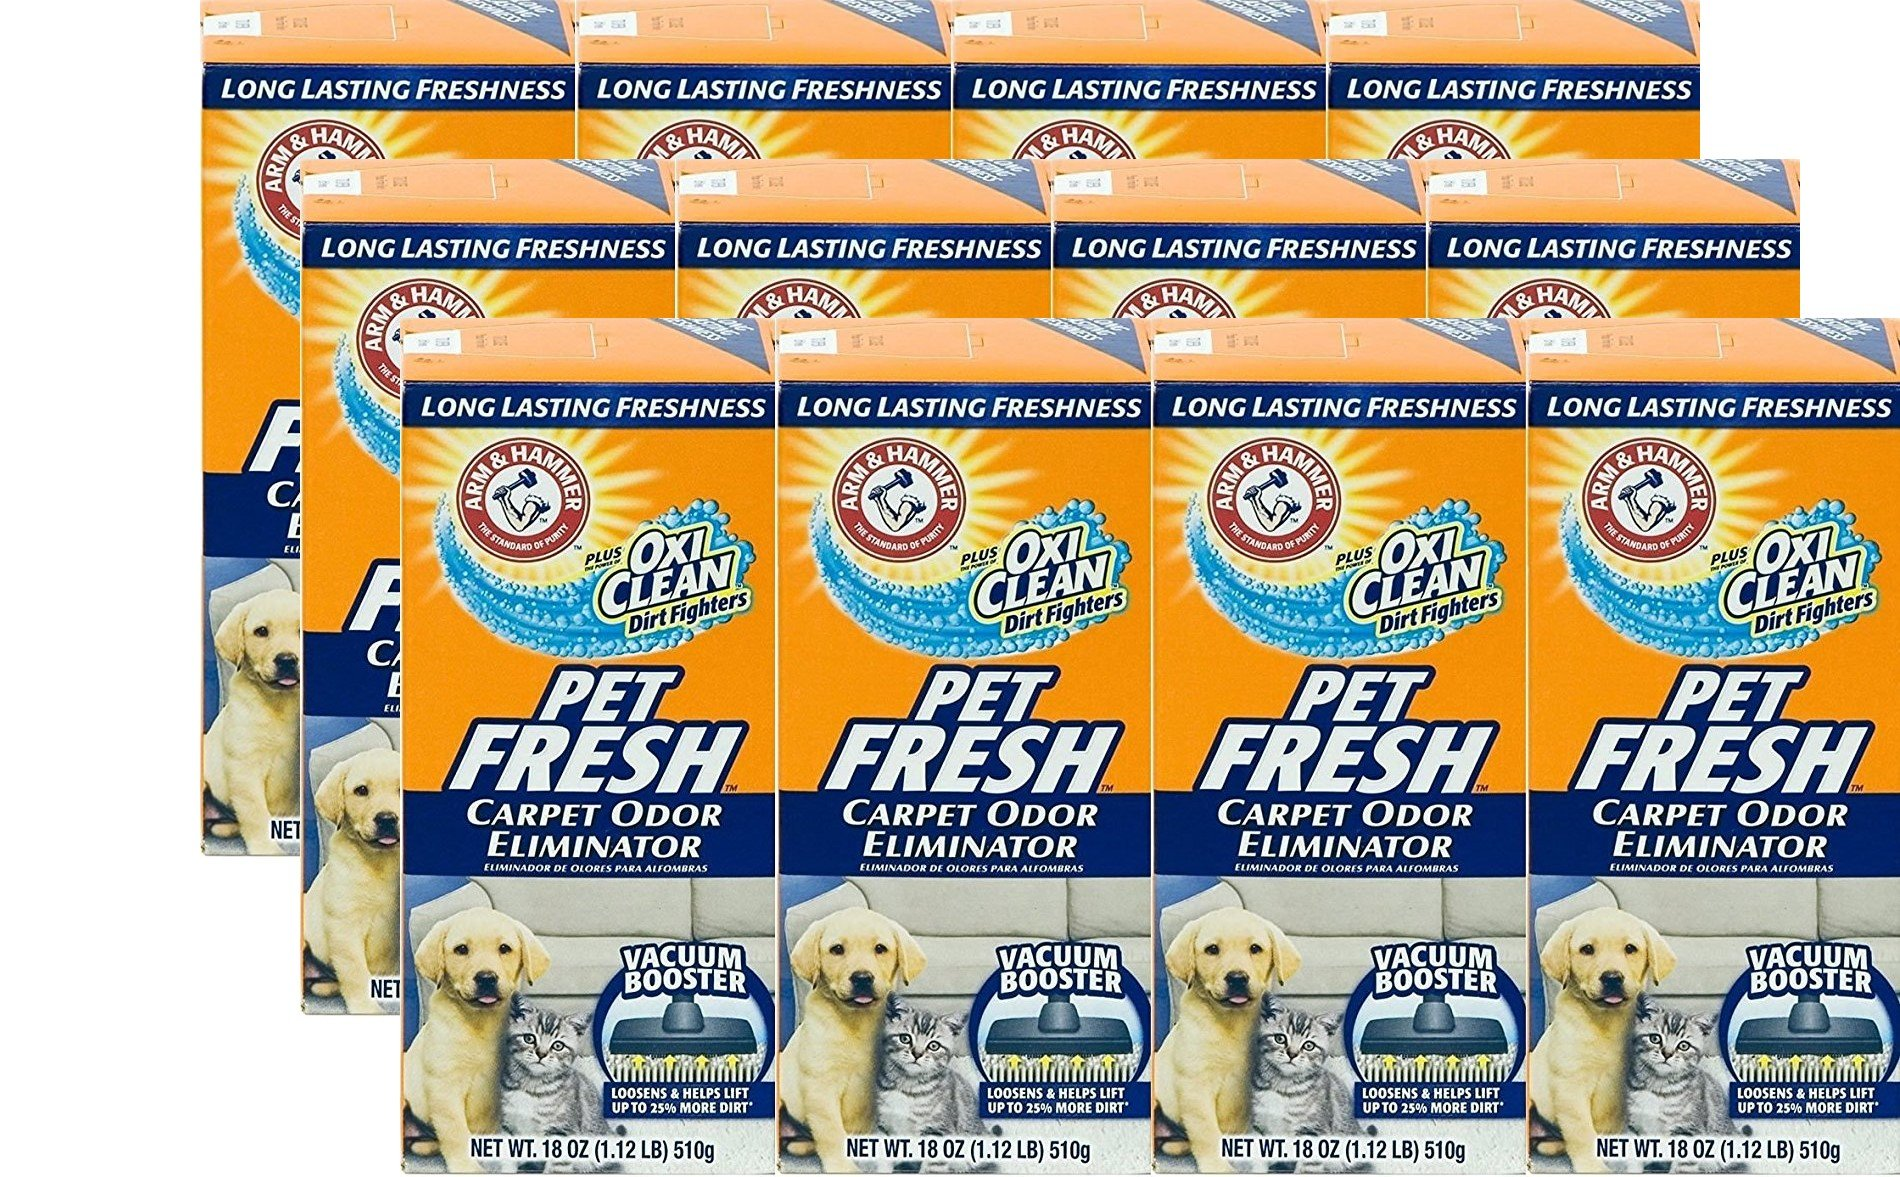 Arm and Hammer Pet Fresh Carpet Odor Eliminator Plus Oxi Clean Dirt Fighters, 16.3 oz, (12 Pack) by Arm & Hammer (Image #1)